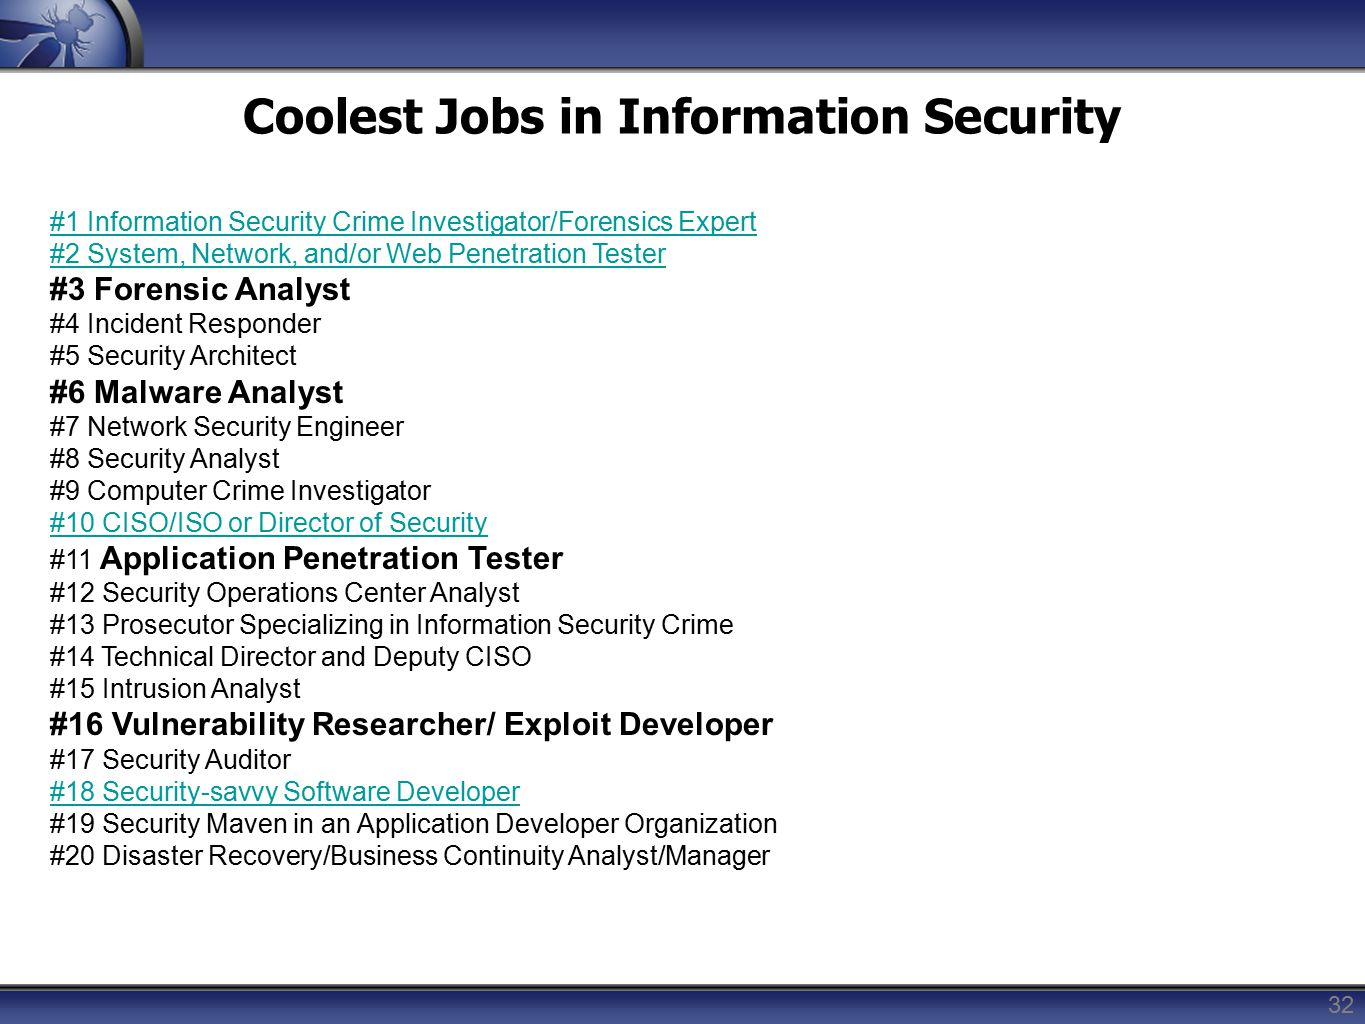 32 Coolest Jobs in Information Security #1 Information Security Crime Investigator/Forensics Expert #2 System, Network, and/or Web Penetration Tester #3 Forensic Analyst #4 Incident Responder #5 Security Architect #6 Malware Analyst #7 Network Security Engineer #8 Security Analyst #9 Computer Crime Investigator #10 CISO/ISO or Director of Security #11 Application Penetration Tester #12 Security Operations Center Analyst #13 Prosecutor Specializing in Information Security Crime #14 Technical Director and Deputy CISO #15 Intrusion Analyst #16 Vulnerability Researcher/ Exploit Developer #17 Security Auditor #18 Security-savvy Software Developer #19 Security Maven in an Application Developer Organization #20 Disaster Recovery/Business Continuity Analyst/Manager